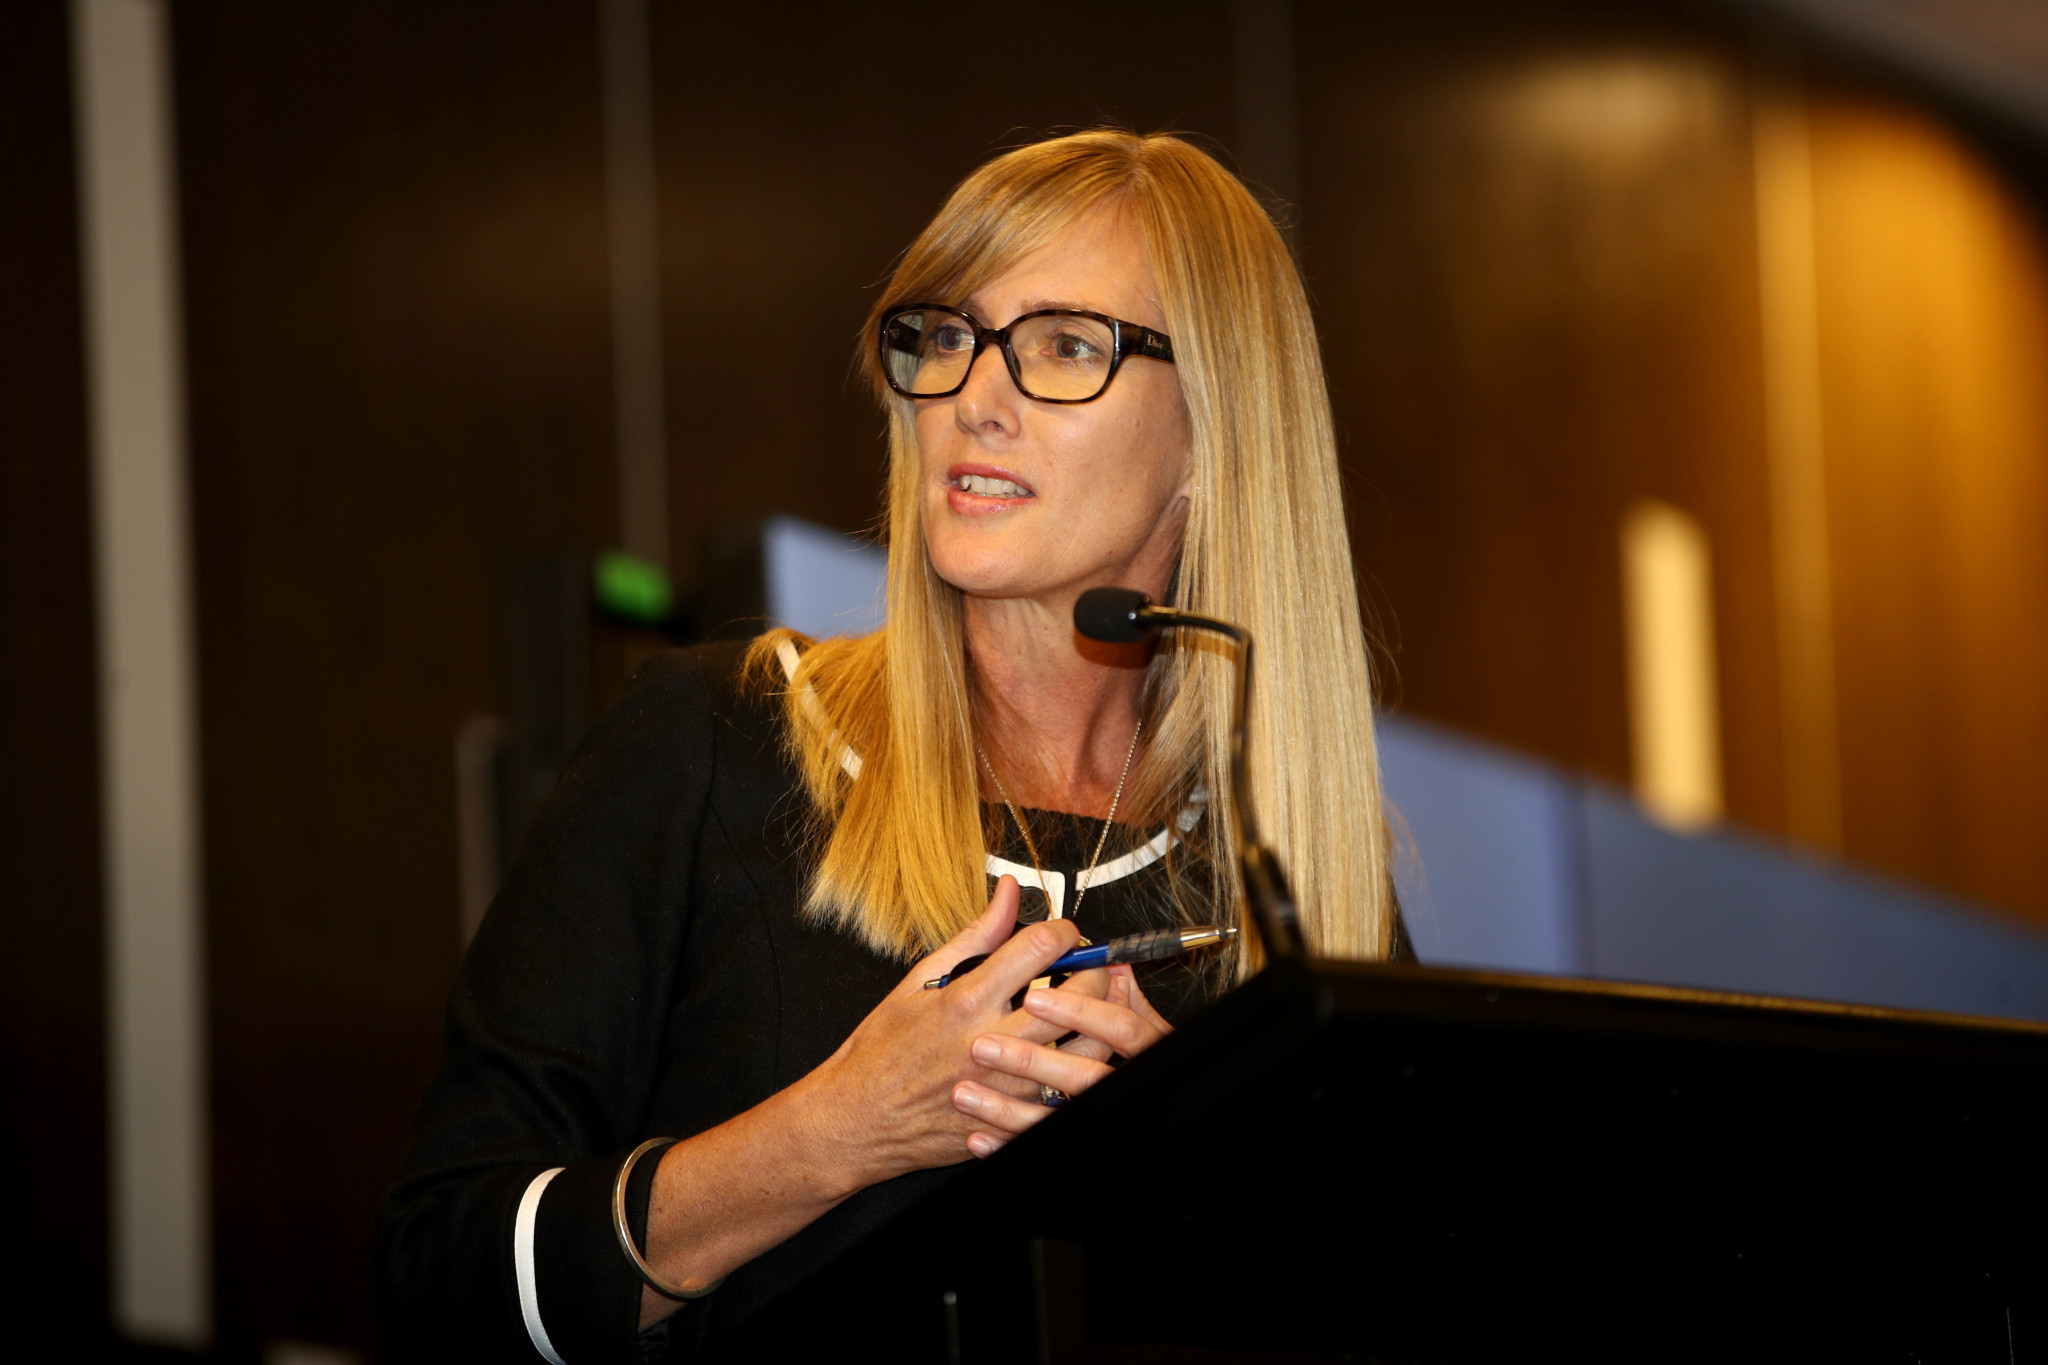 Public affairs and communications director at New Zealand Olympic Committee, Ashley Abbott, is calling for more balanced reporting of women in sport ©NZOC